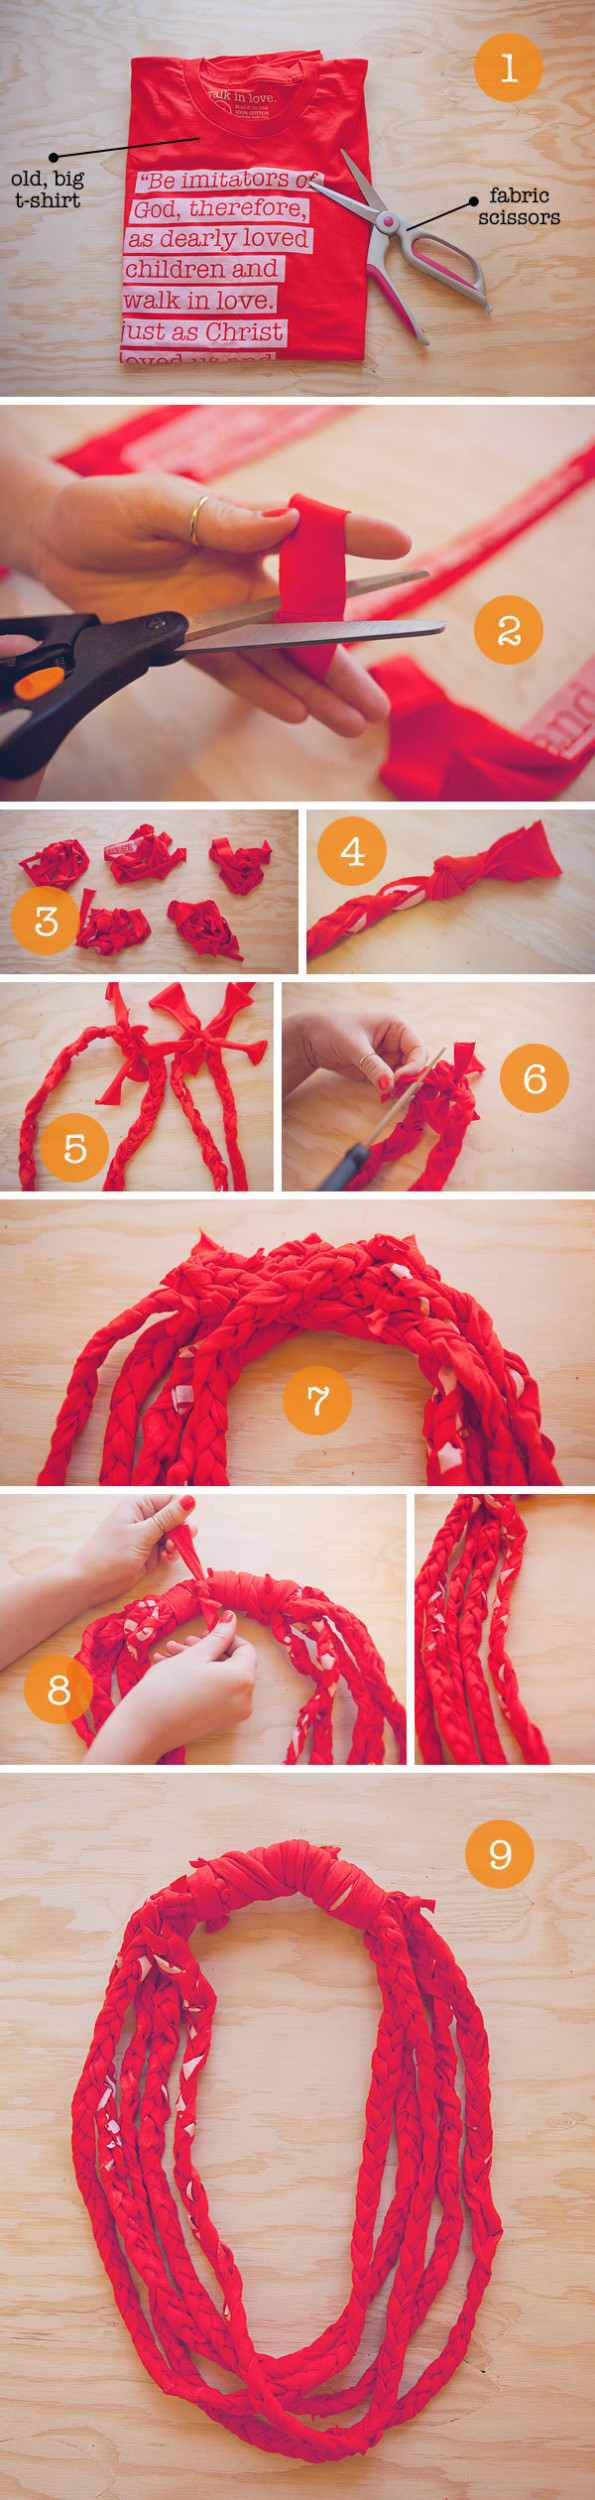 t shirt scarf instructions